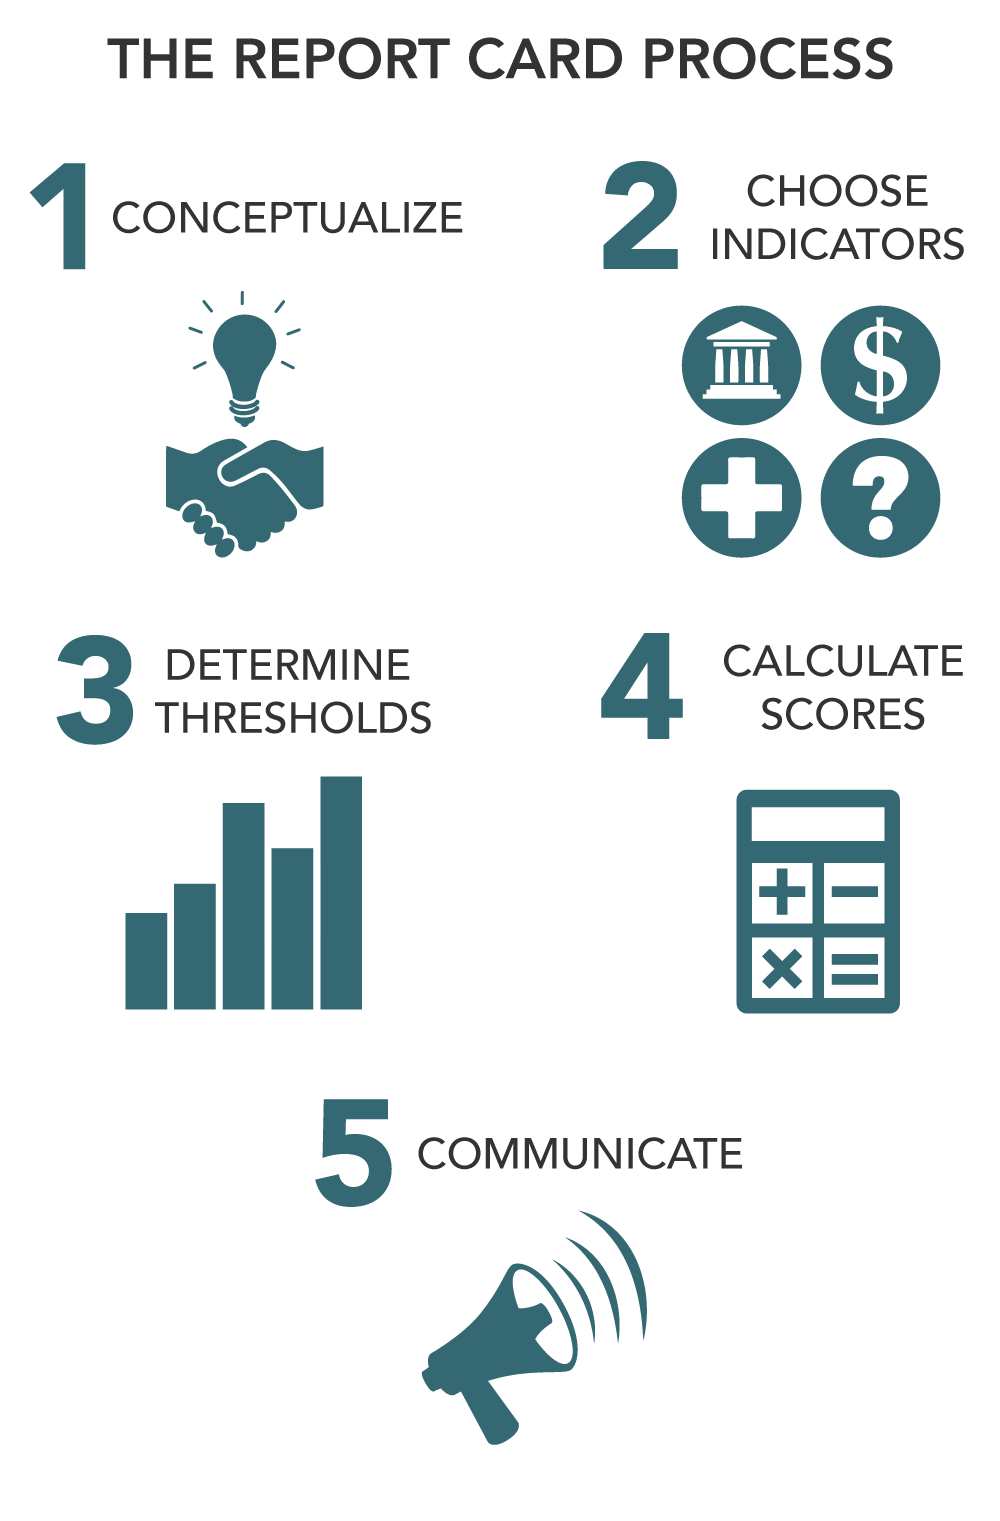 Graphic showing the report card process. Step 1 is conceptualize. Step 2 is to choose indicators. Step 3 is to determine thresholds. Step 4 is to calculate scores. Step 5 is to communicate.